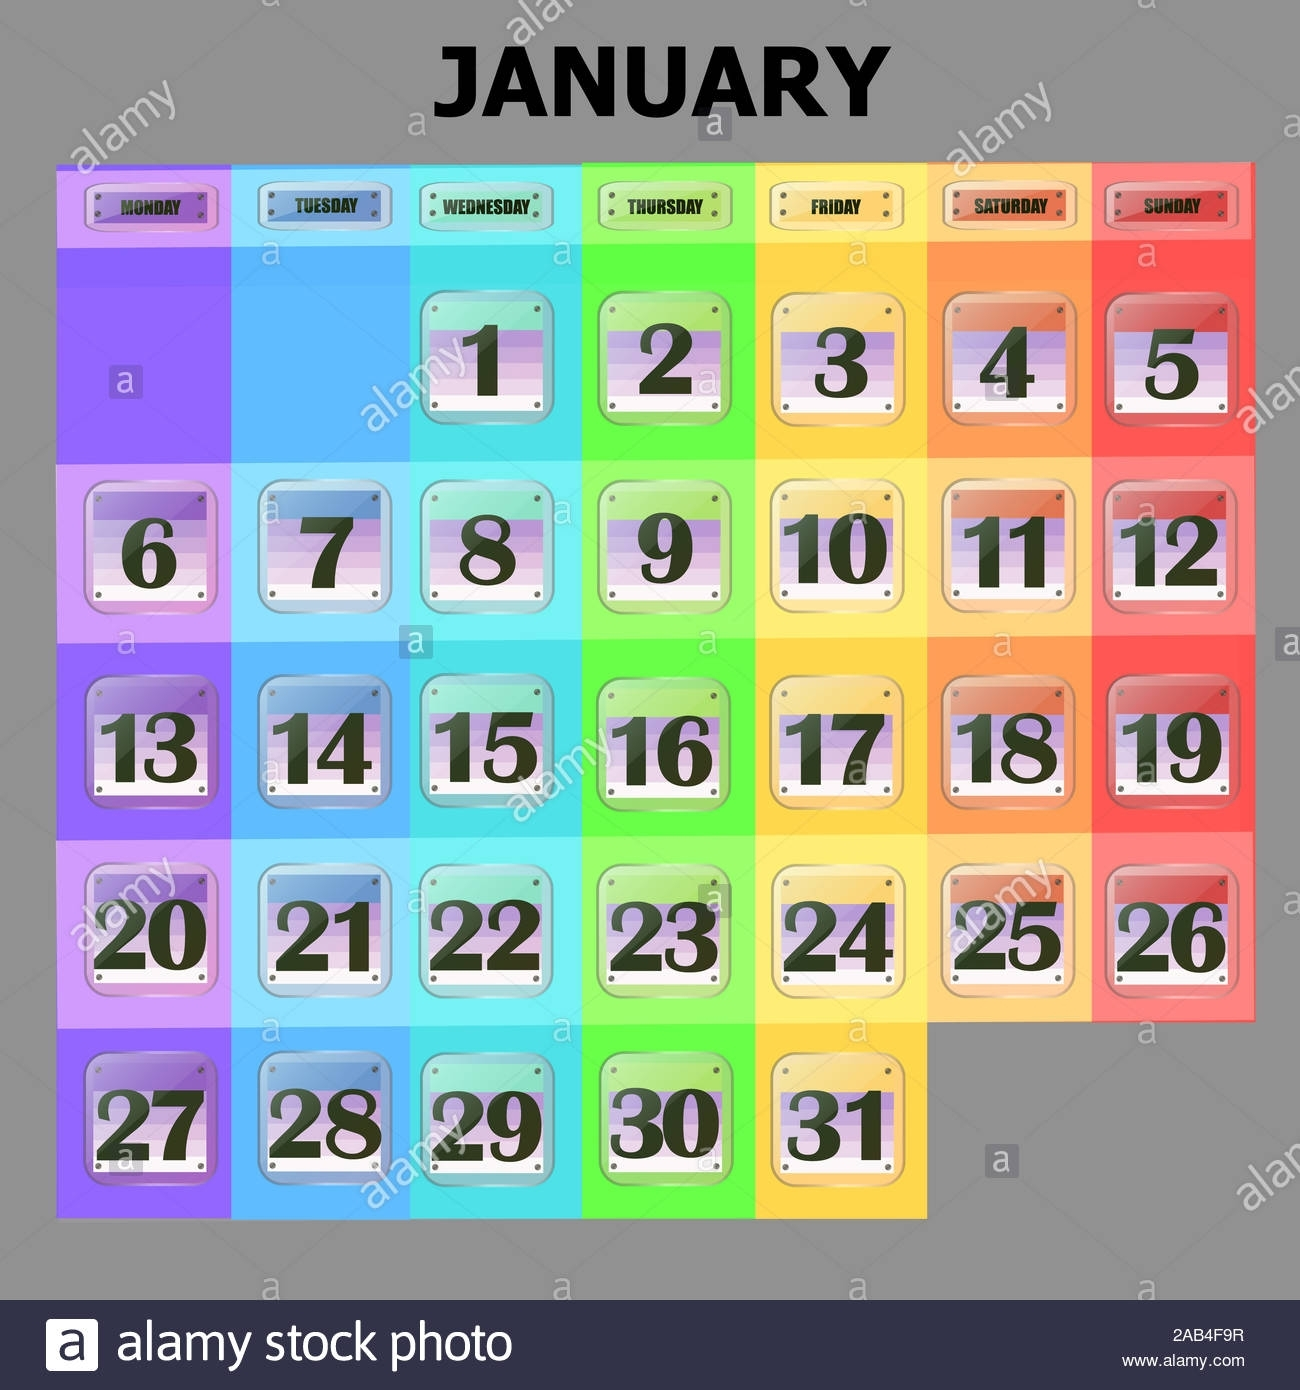 Colorful Calendar For January 2020 In English. Set Of regarding Special Days By Month In 2020